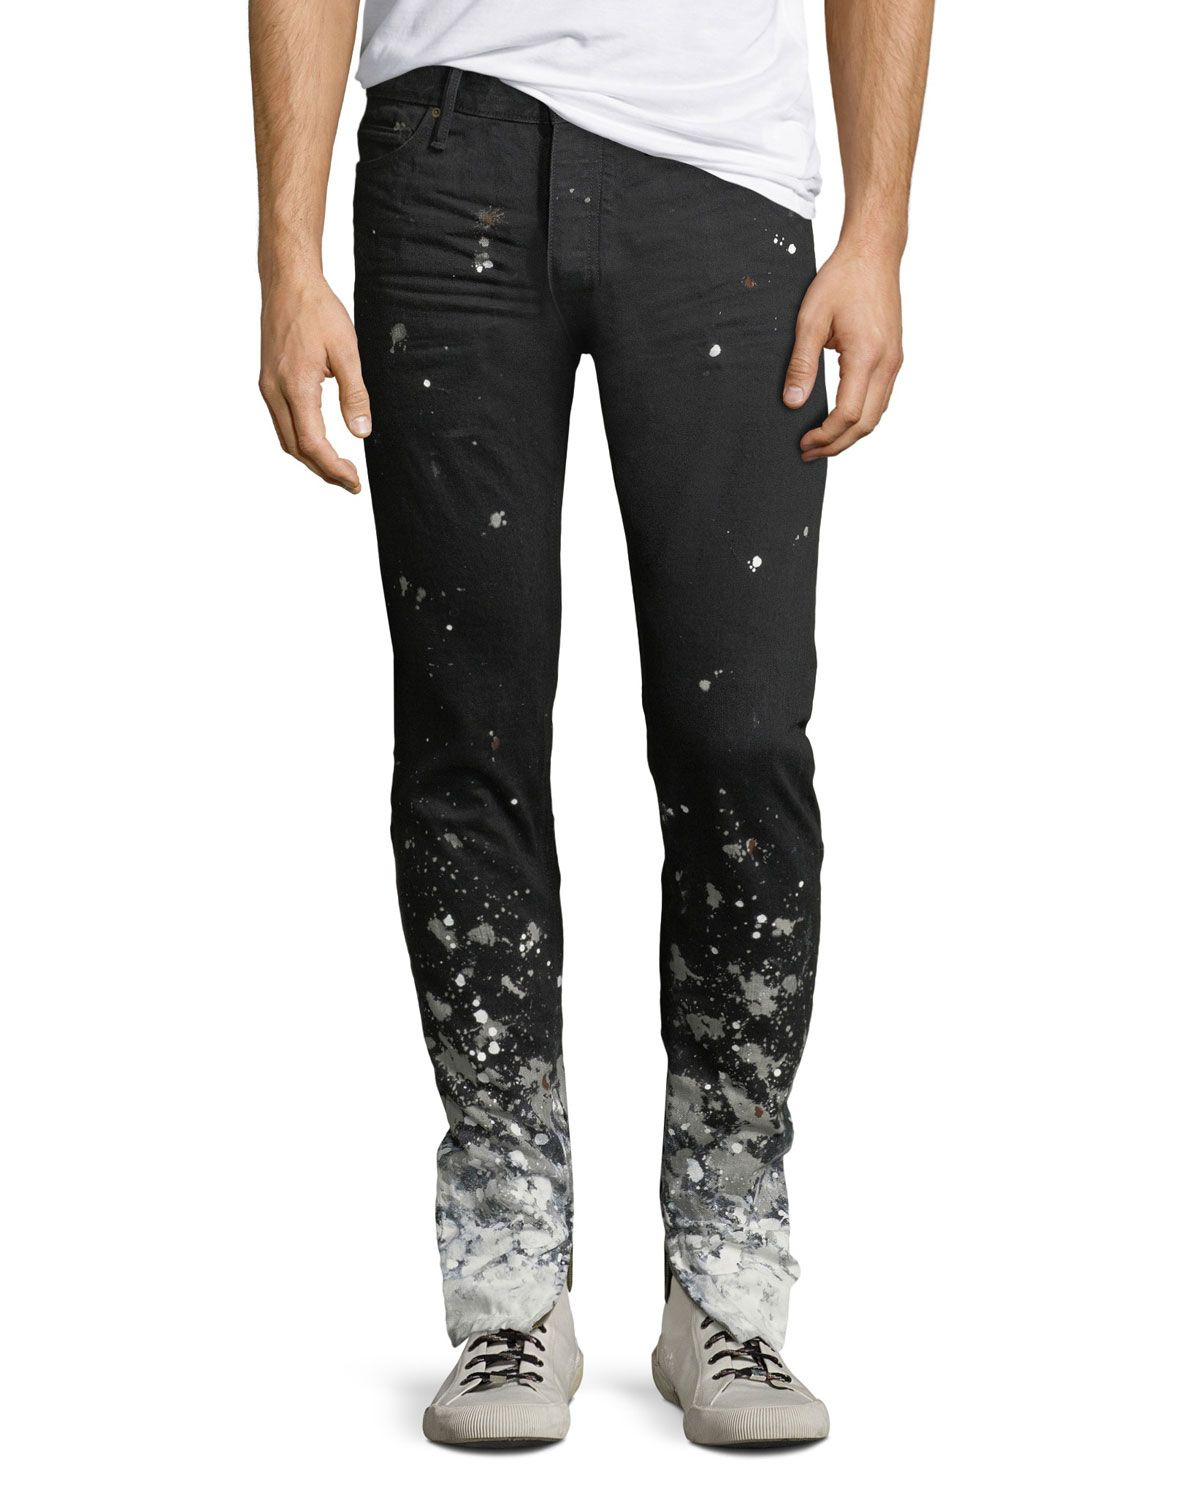 Kanye West Fear Of God Jeans Google Search Kanye West Style Kanye West Kanye Fashion